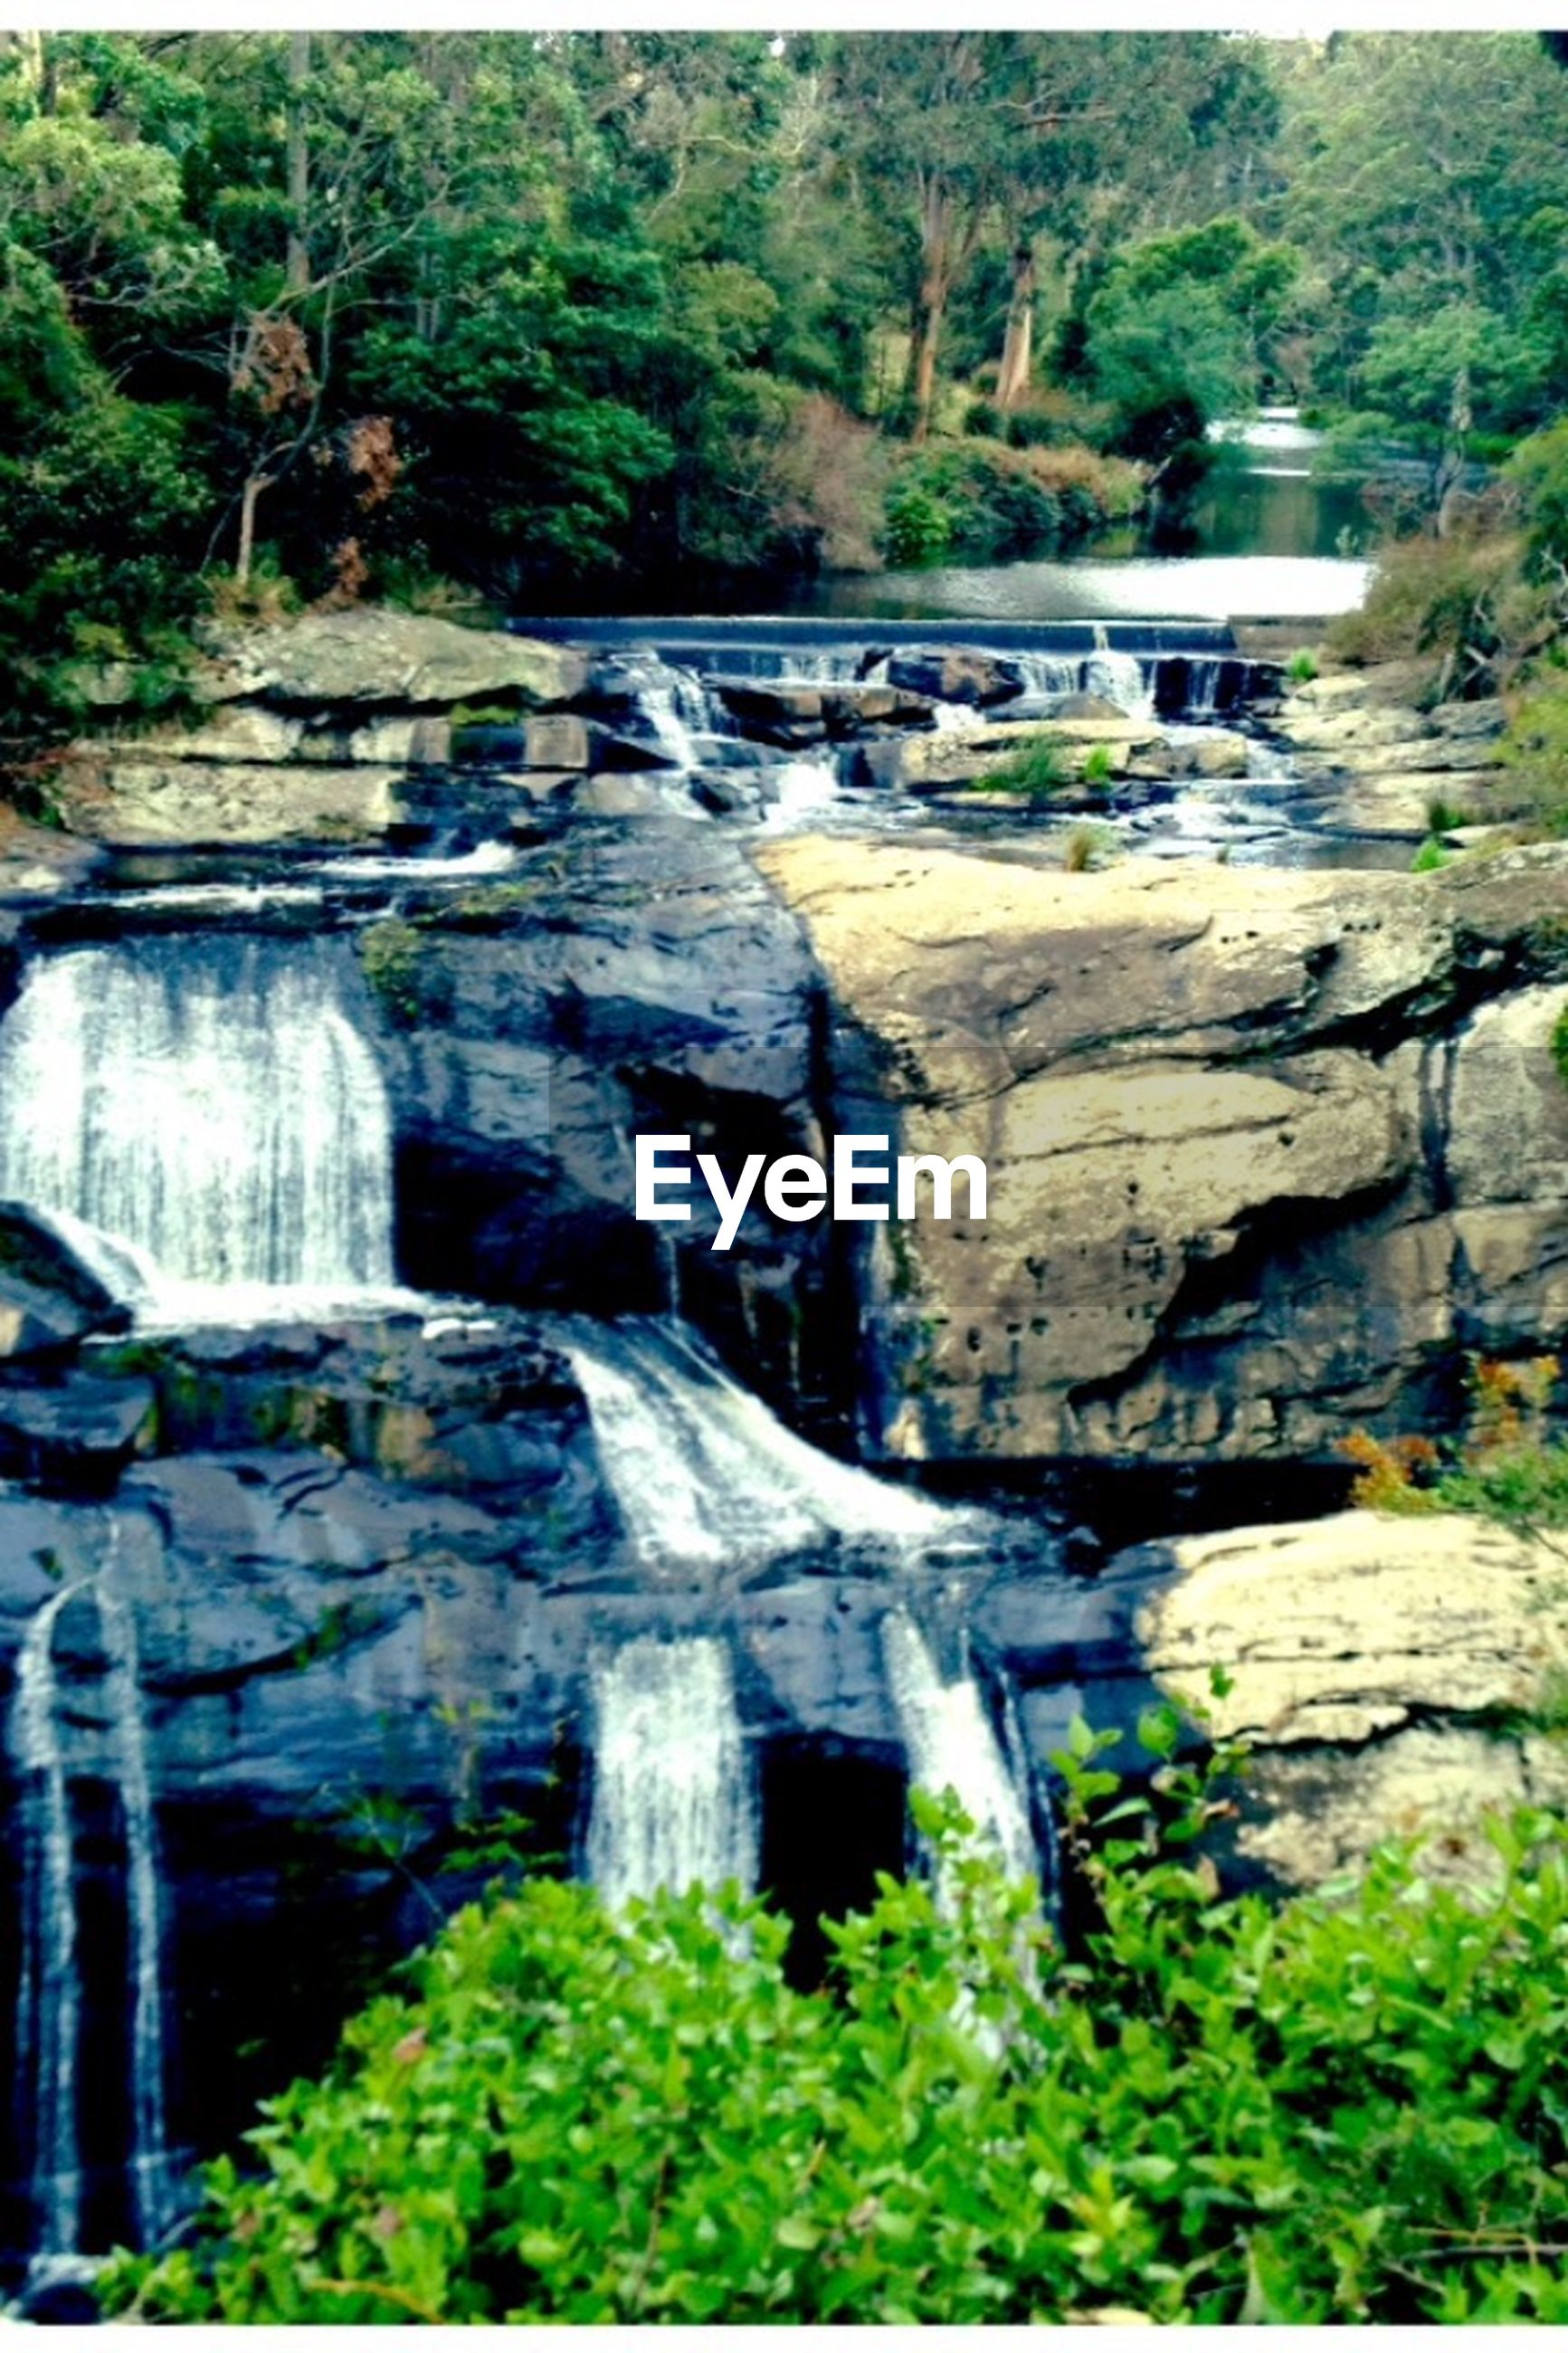 water, waterfall, flowing water, rock - object, tree, flowing, forest, beauty in nature, nature, scenics, rock formation, river, motion, stream, plant, rock, tranquility, growth, tranquil scene, green color